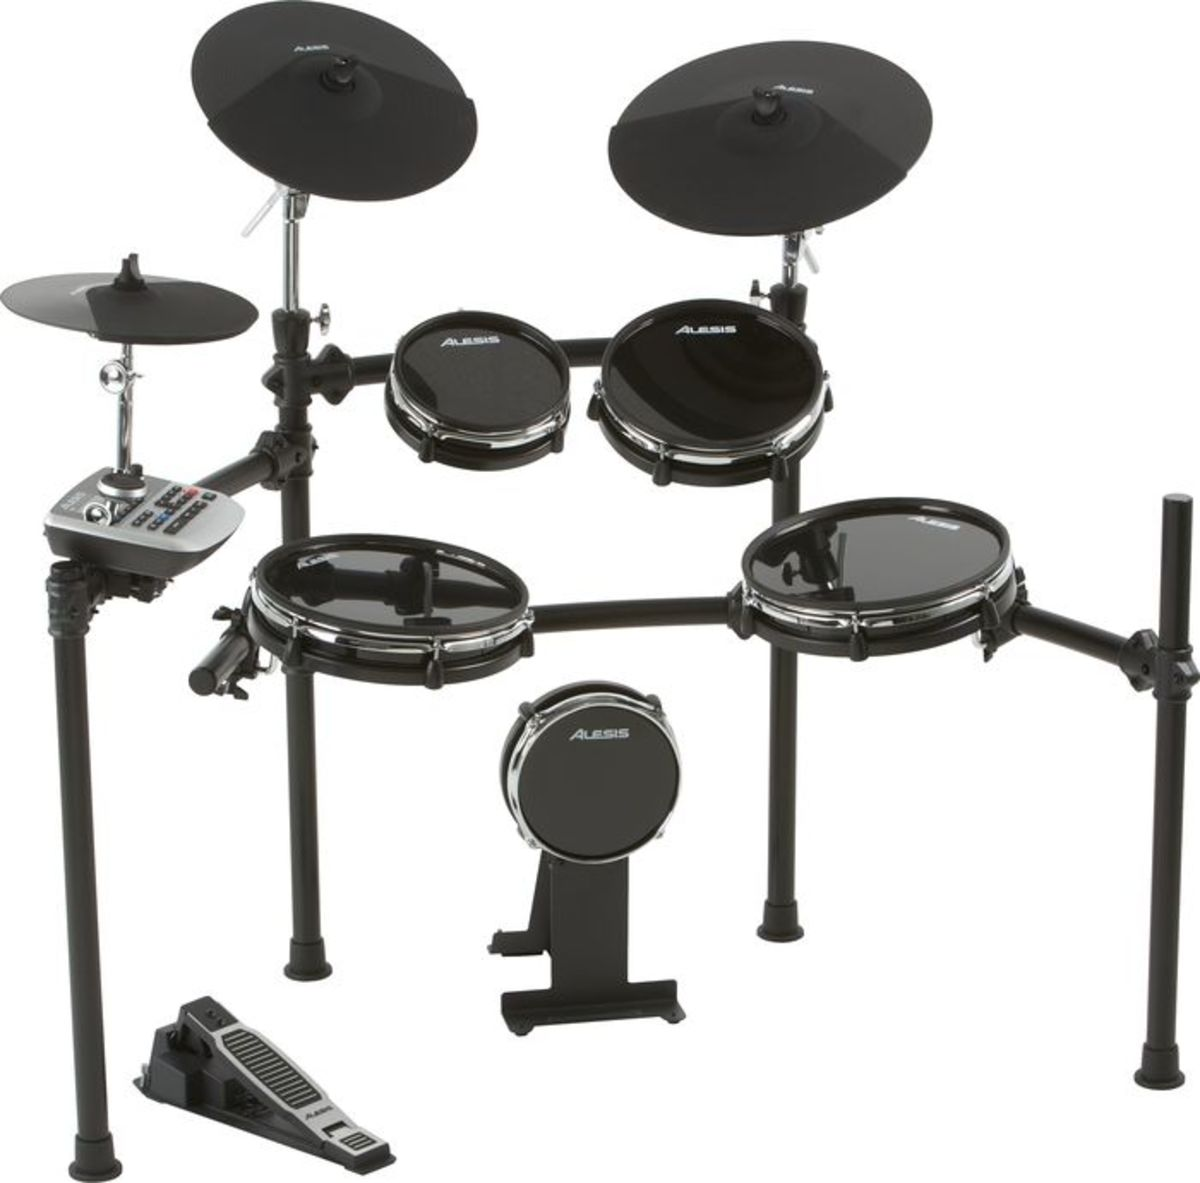 4 Great Electronic Drum Sets for Kids and Beginners